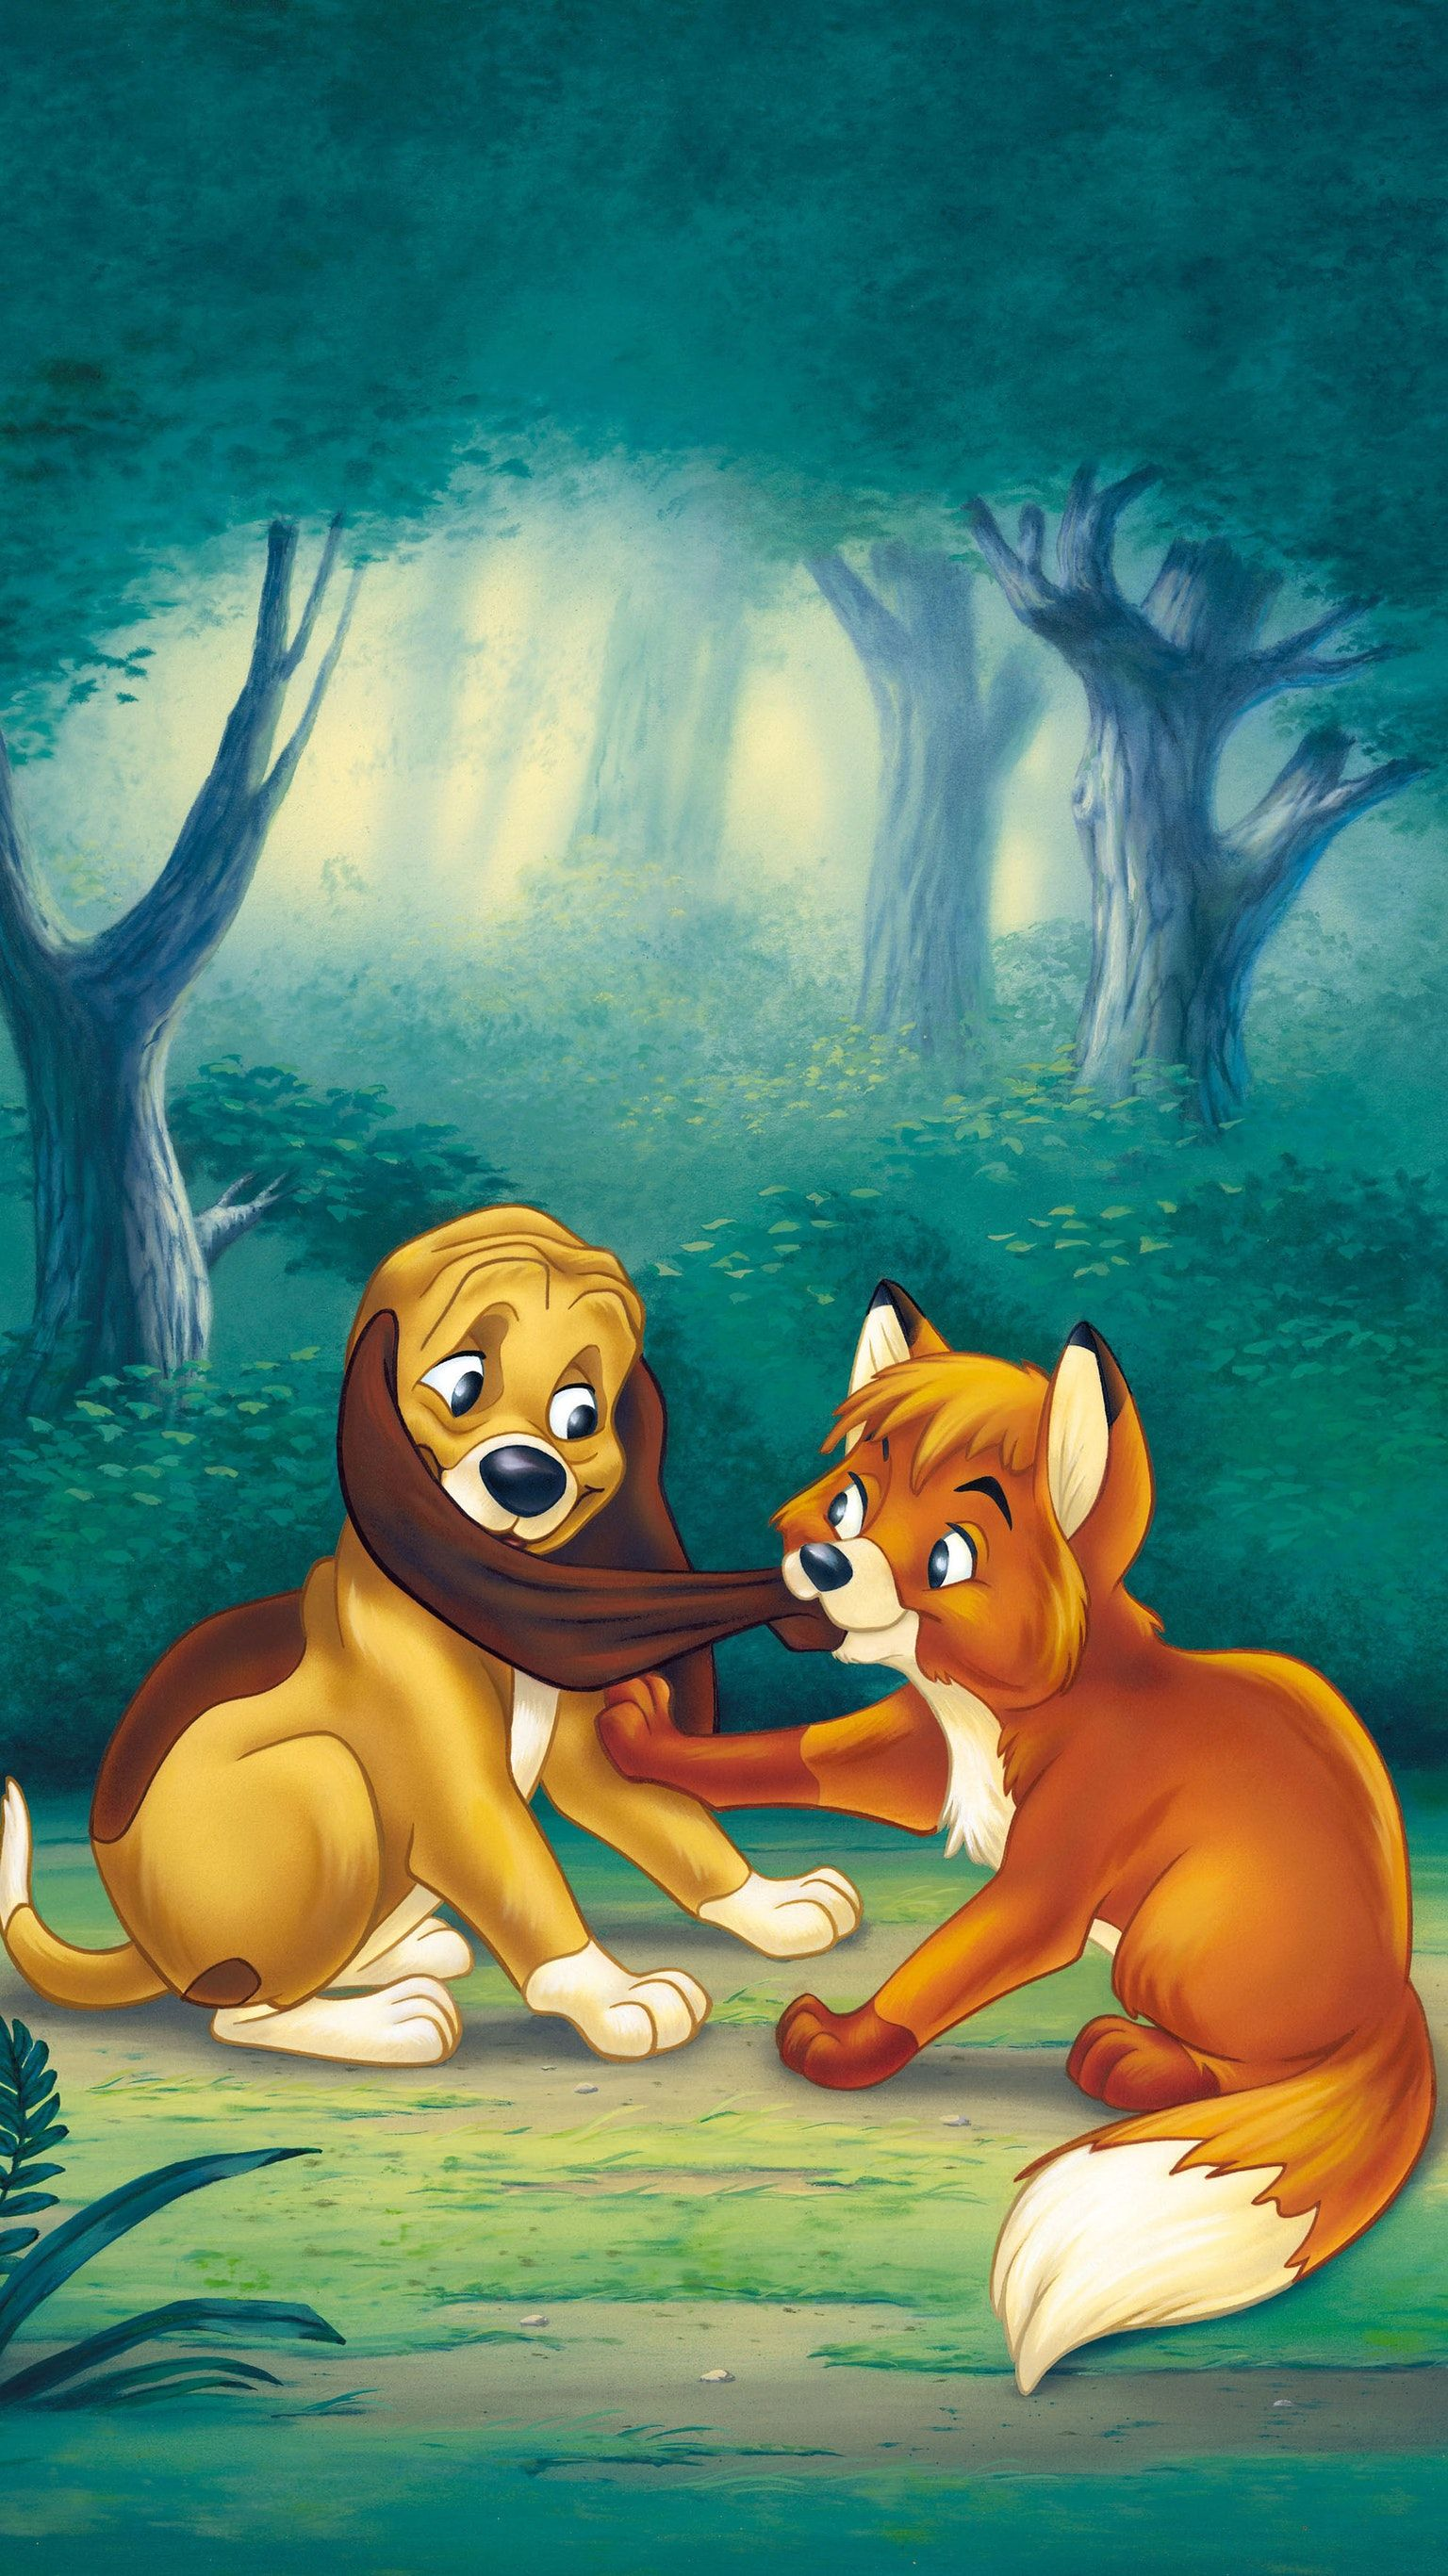 The Fox And The Hound 1981 Phone Wallpaper Moviemania The Fox And The Hound Disney Posters Hound